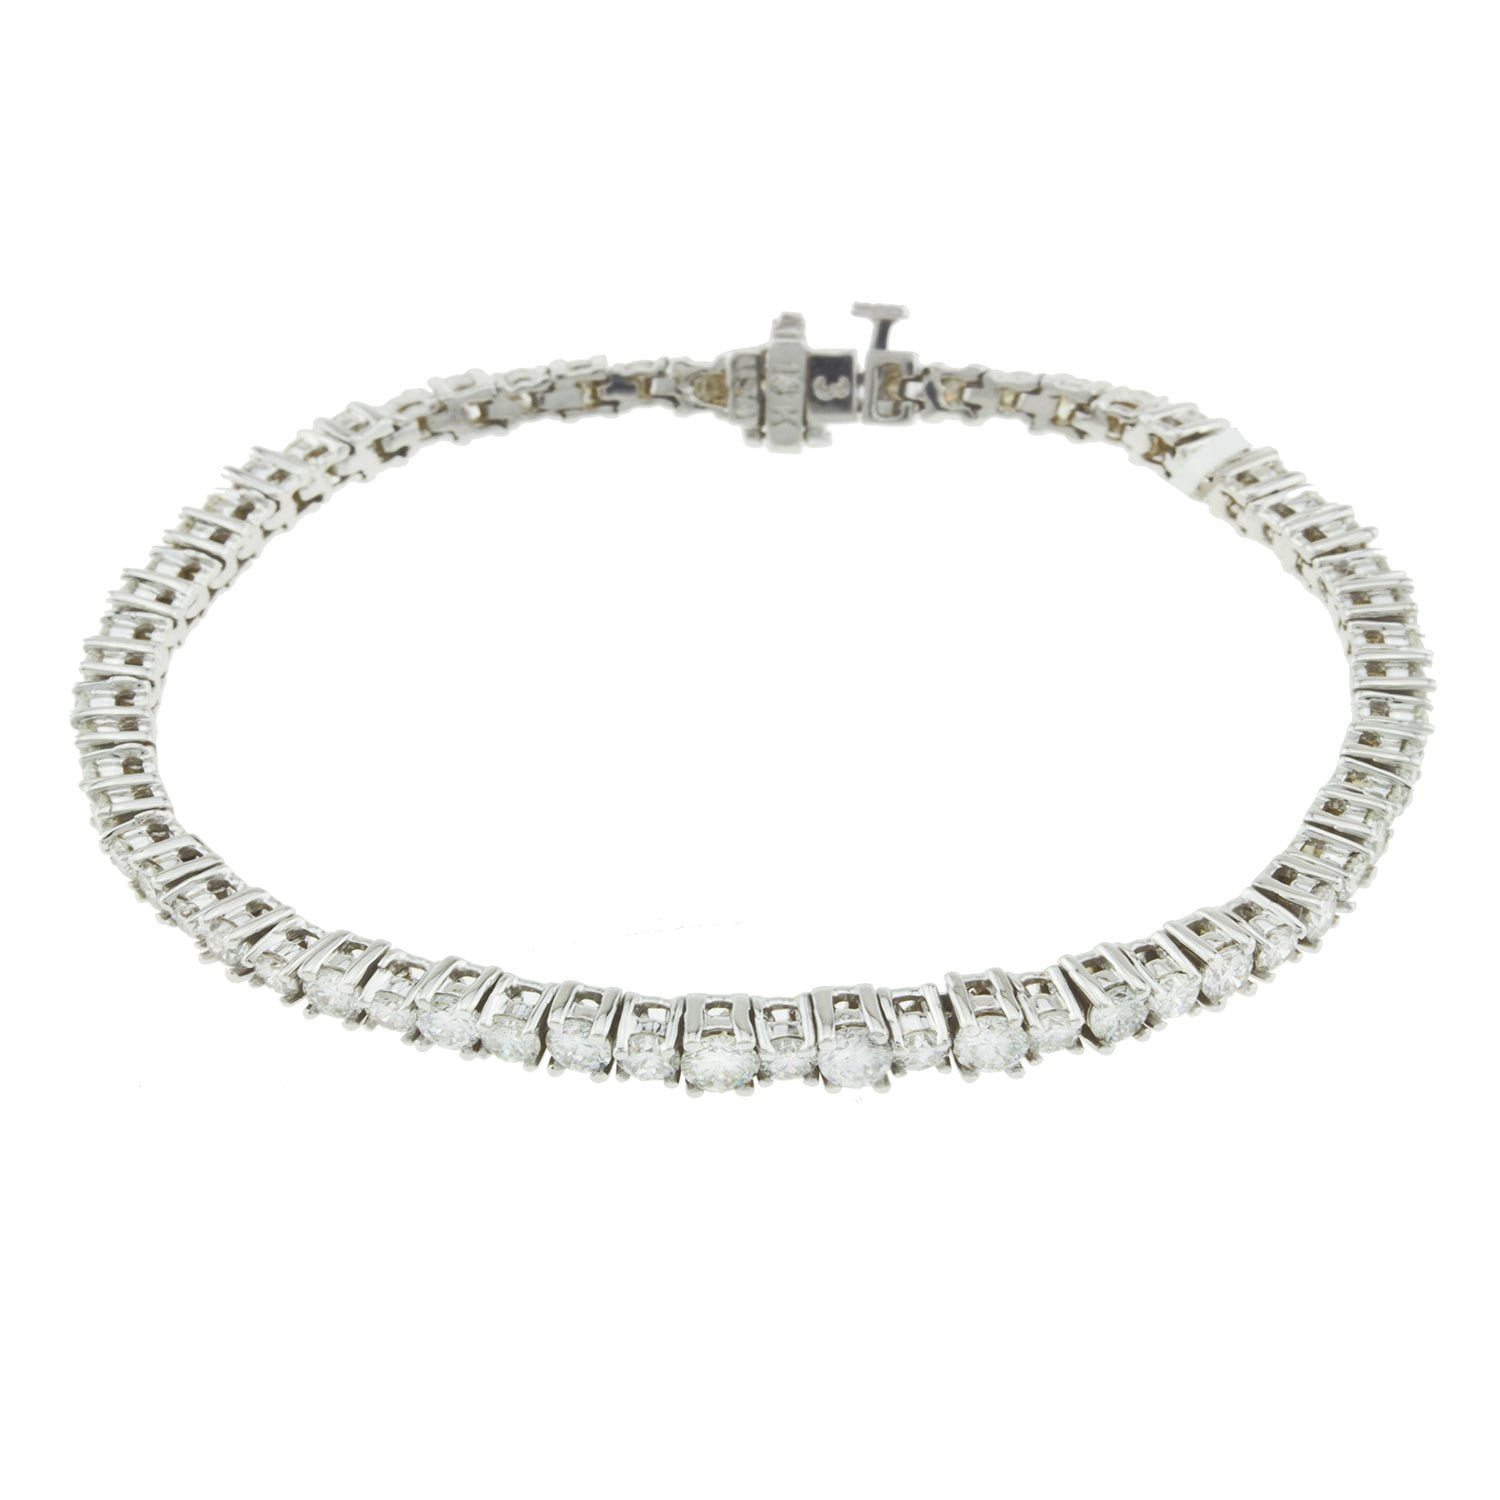 18K White Gold Diamond Tennis Bracelet With Round Cut Diamonds 6.25CT